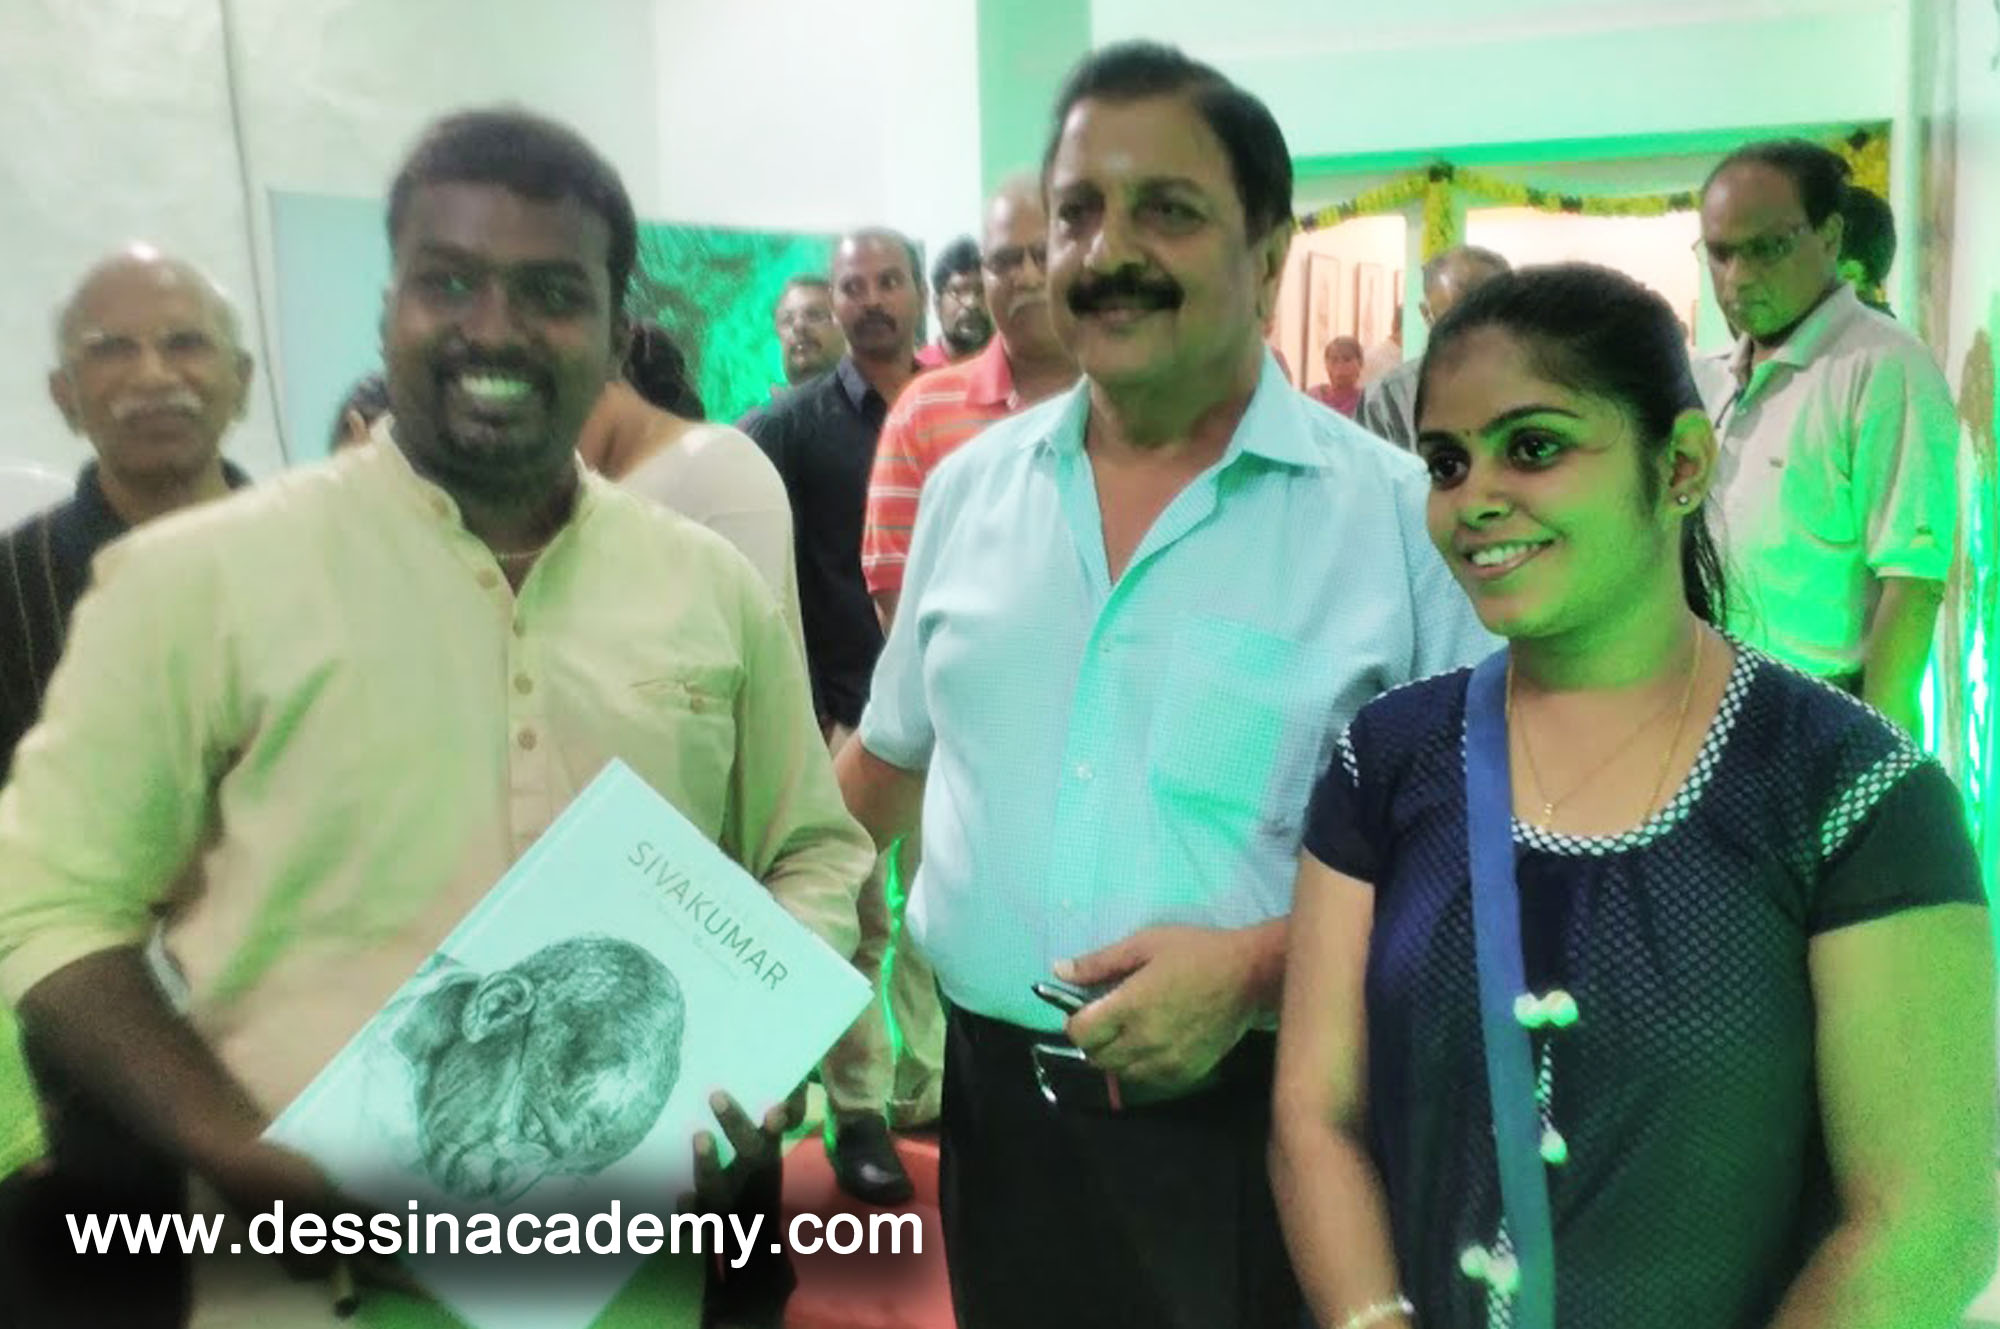 Dessin School of arts Event Gallery 4, part time fine arts courses Institute in Anna Nagar East L BlockDessin School of Arts